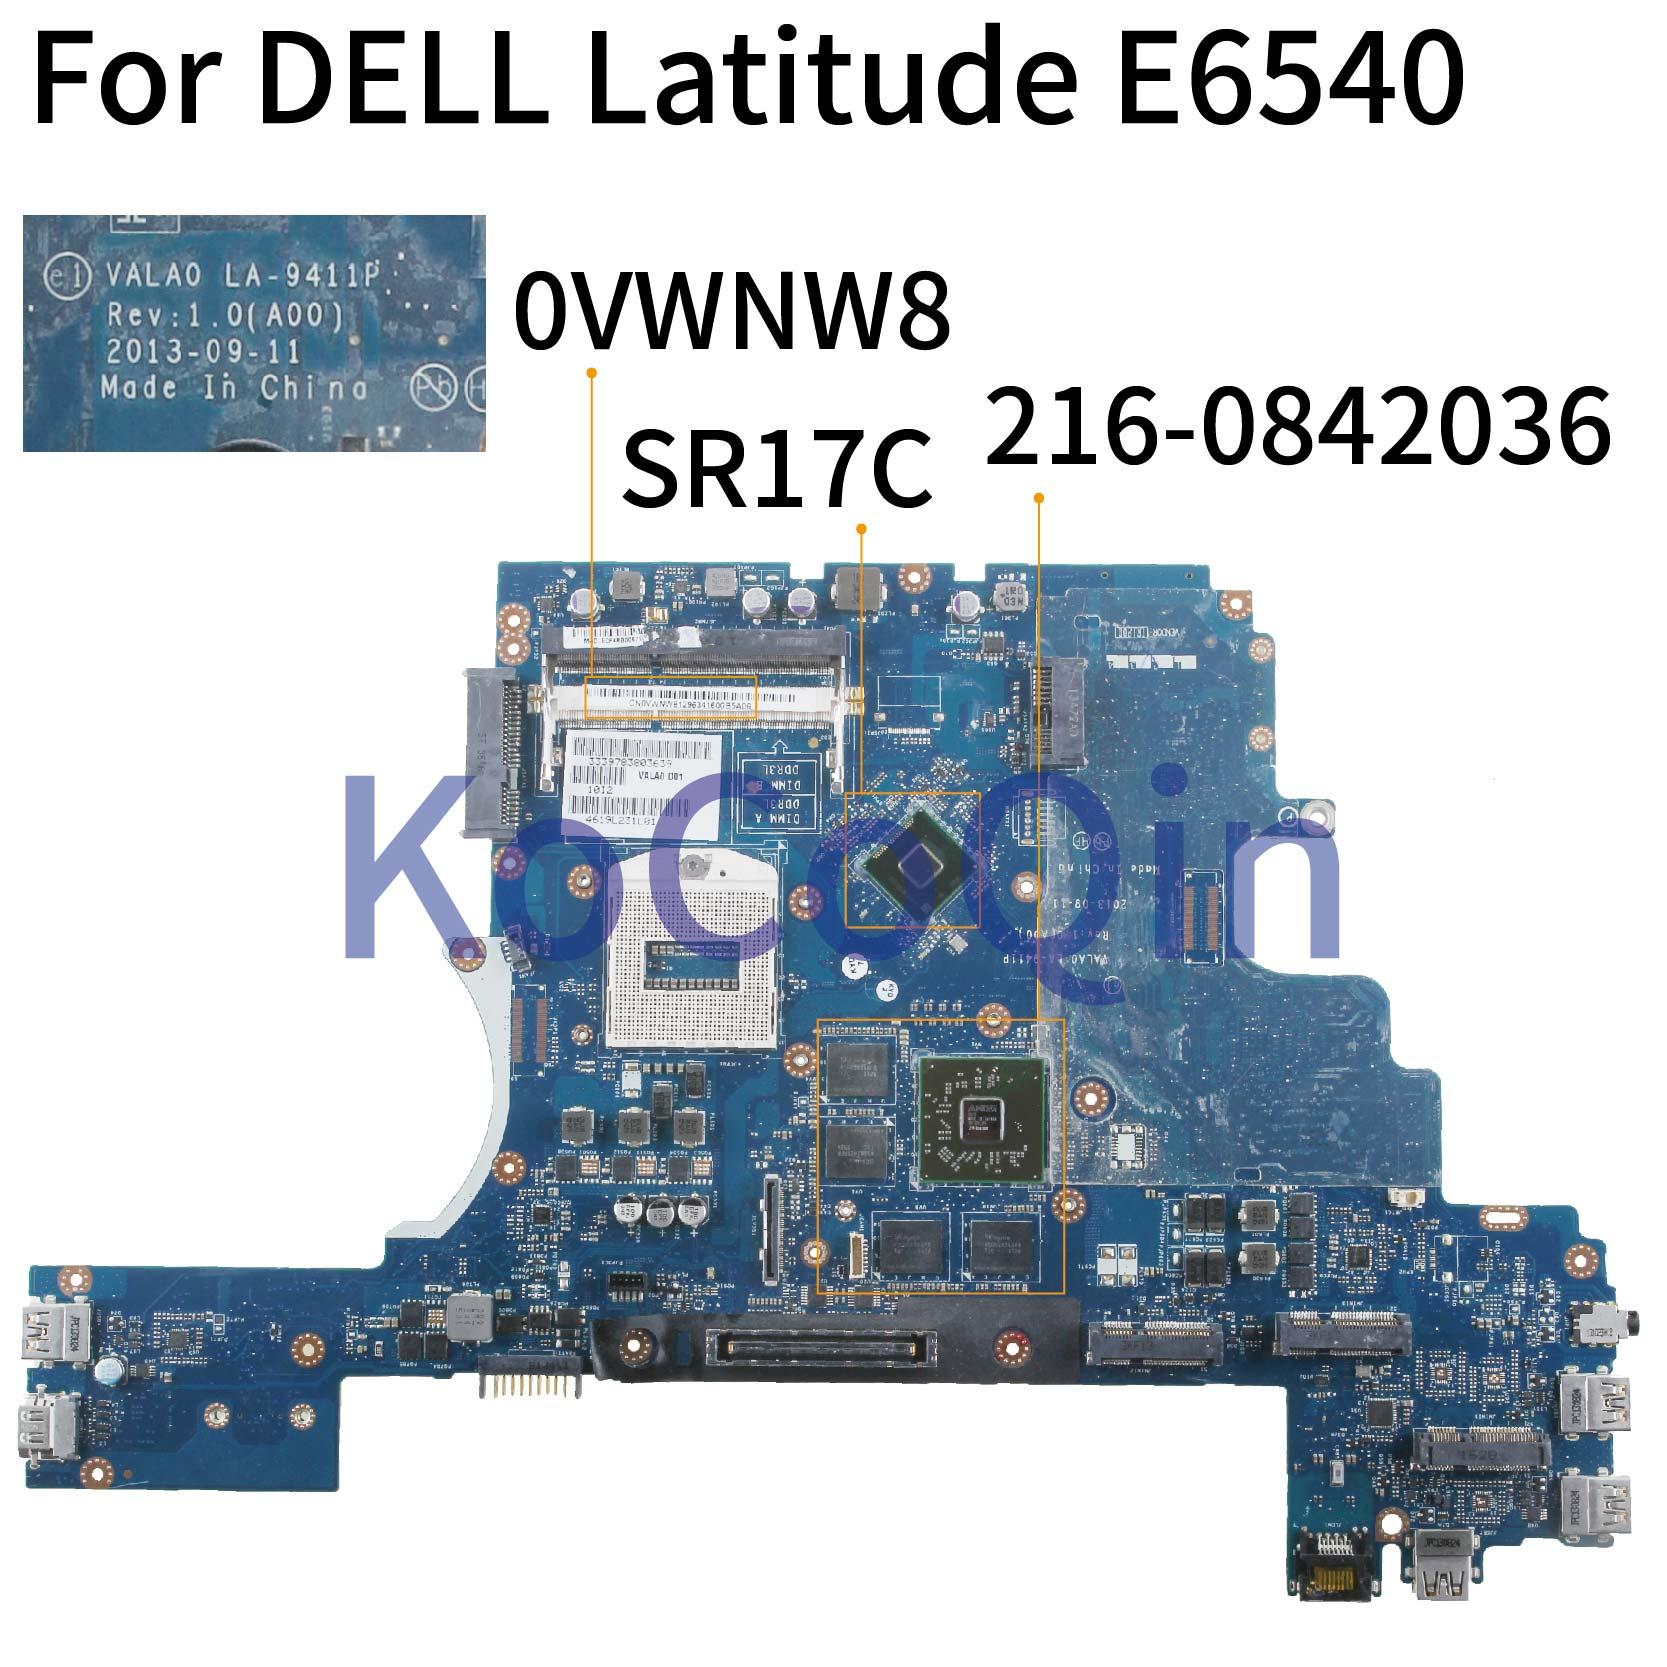 KoCoQin ноутбук материнская плата для Dell Latitude E6540 HD8790M 2G PGA947 материнская плата CN-0VWNW8 0VWNW8 VALA0 LA-9411P 216-0842036 SR17C image